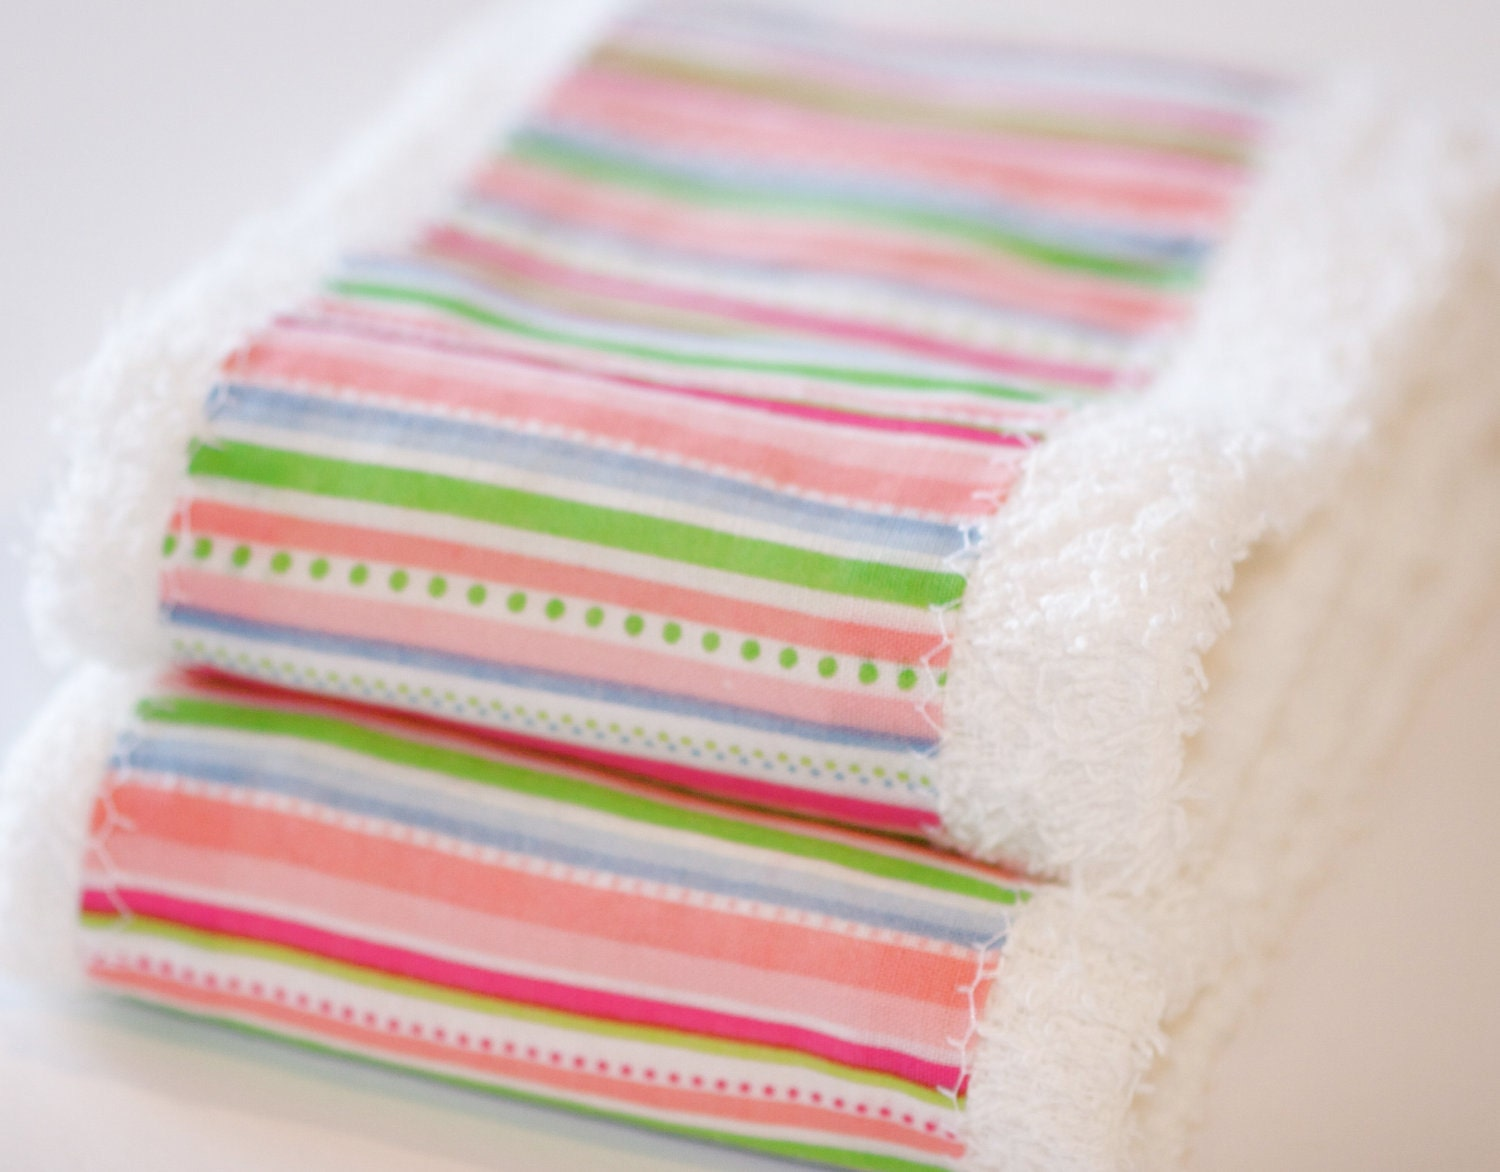 Baby Girl Washcloth /  Burp Cloth Gift Set Stylish Pink, Green, and Blue Striped Washcloth/Burp Cloth Set of 2 EtsyKids